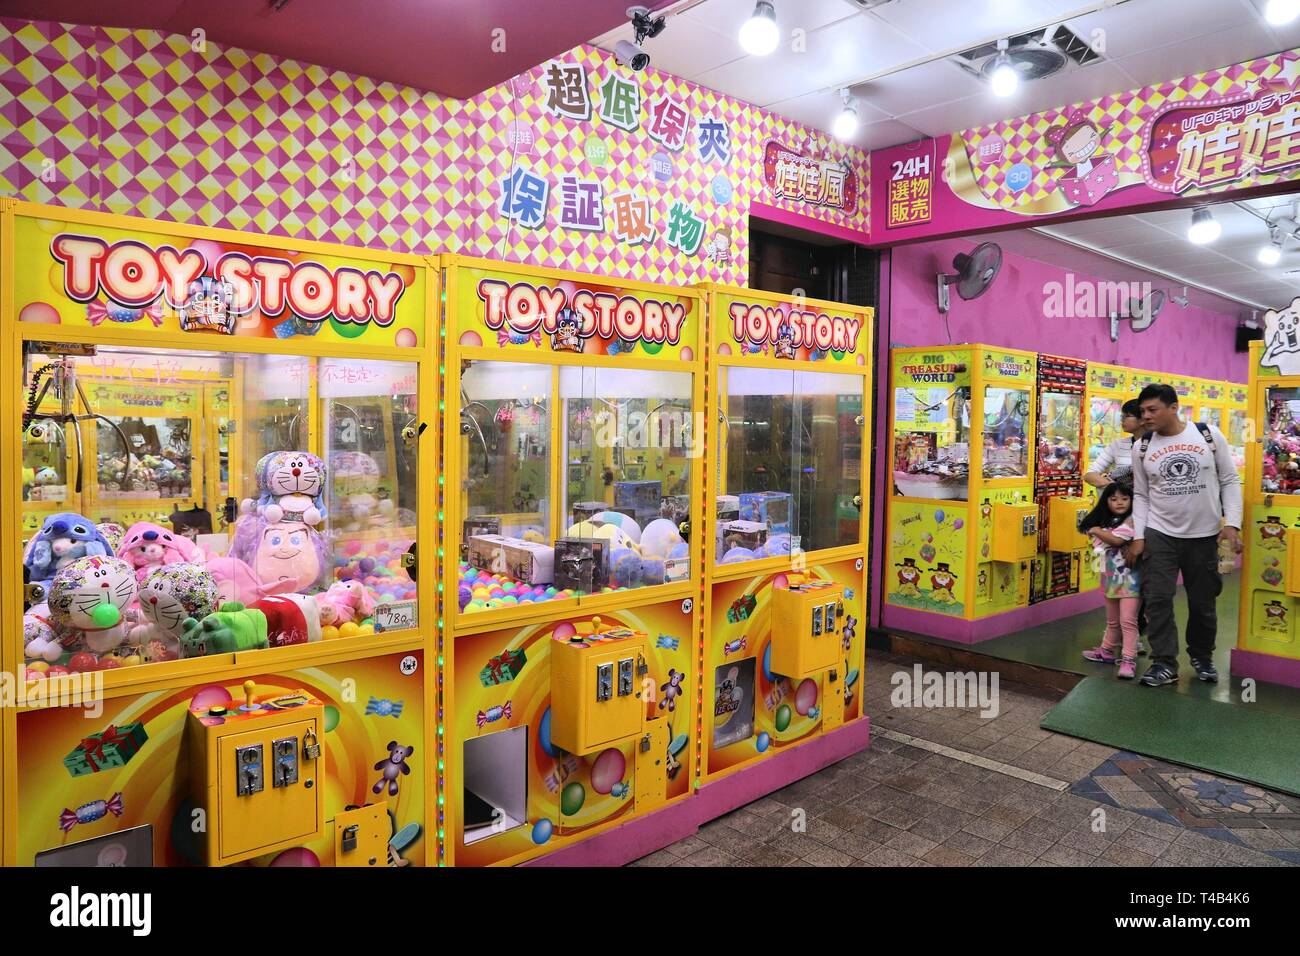 TAIPEI, TAIWAN - DECEMBER 4, 2018: Claw machine gaming parlor in Taipei, Taiwan. Claw machine arcades in Taiwan suddenly rose in numbers from 3,300 in - Stock Image